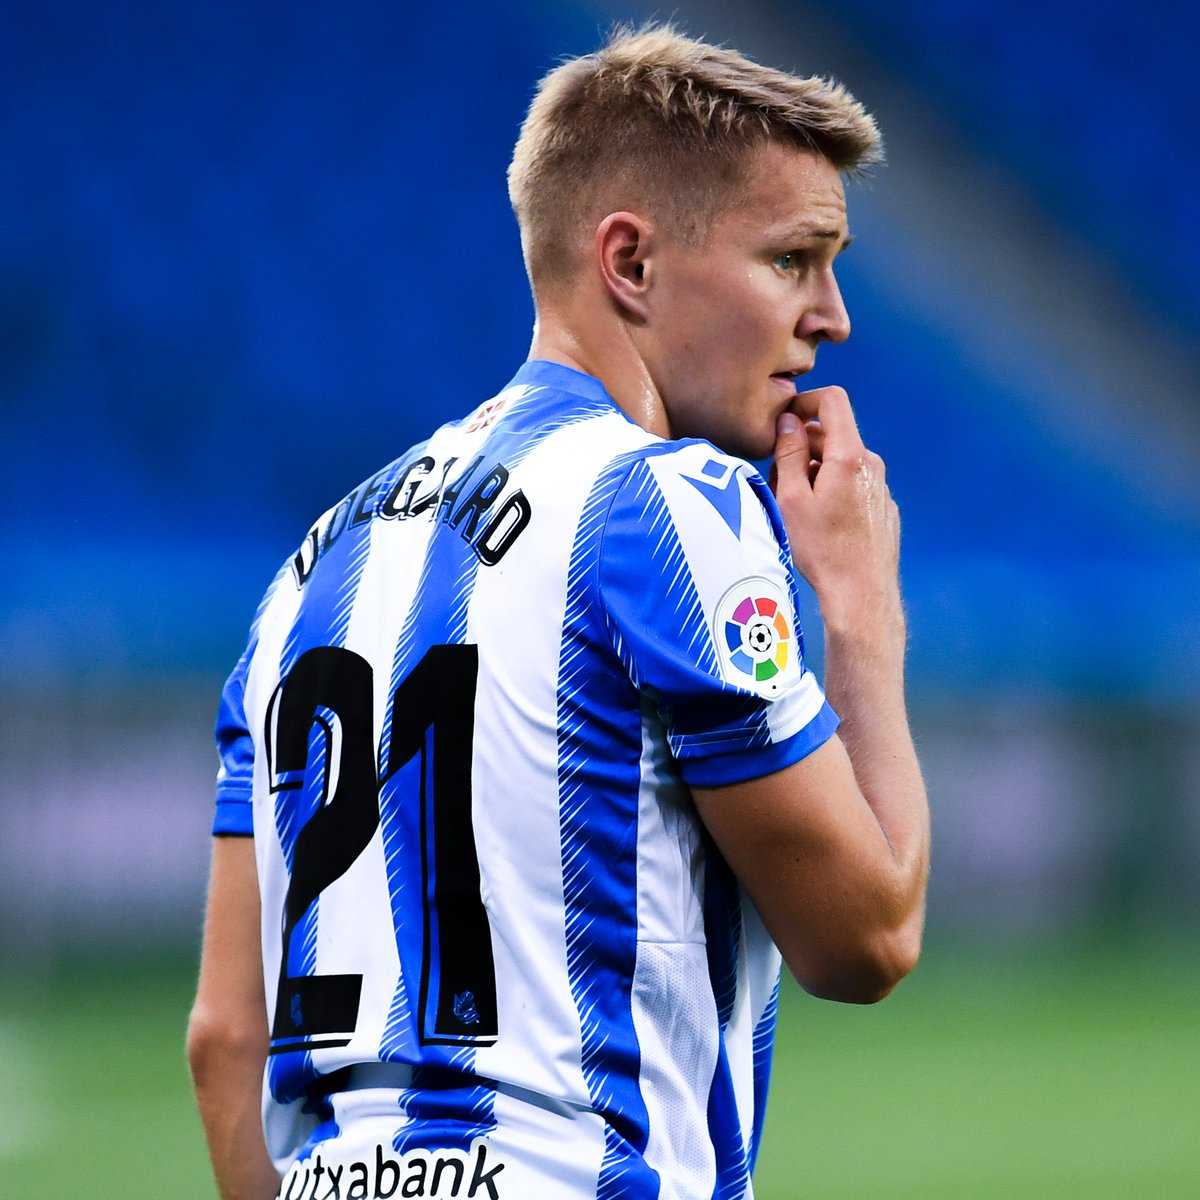 Replying to @goal: Martin Odegaard would prefer to join Real Sociedad over Arsenal, according to BBC 🗞